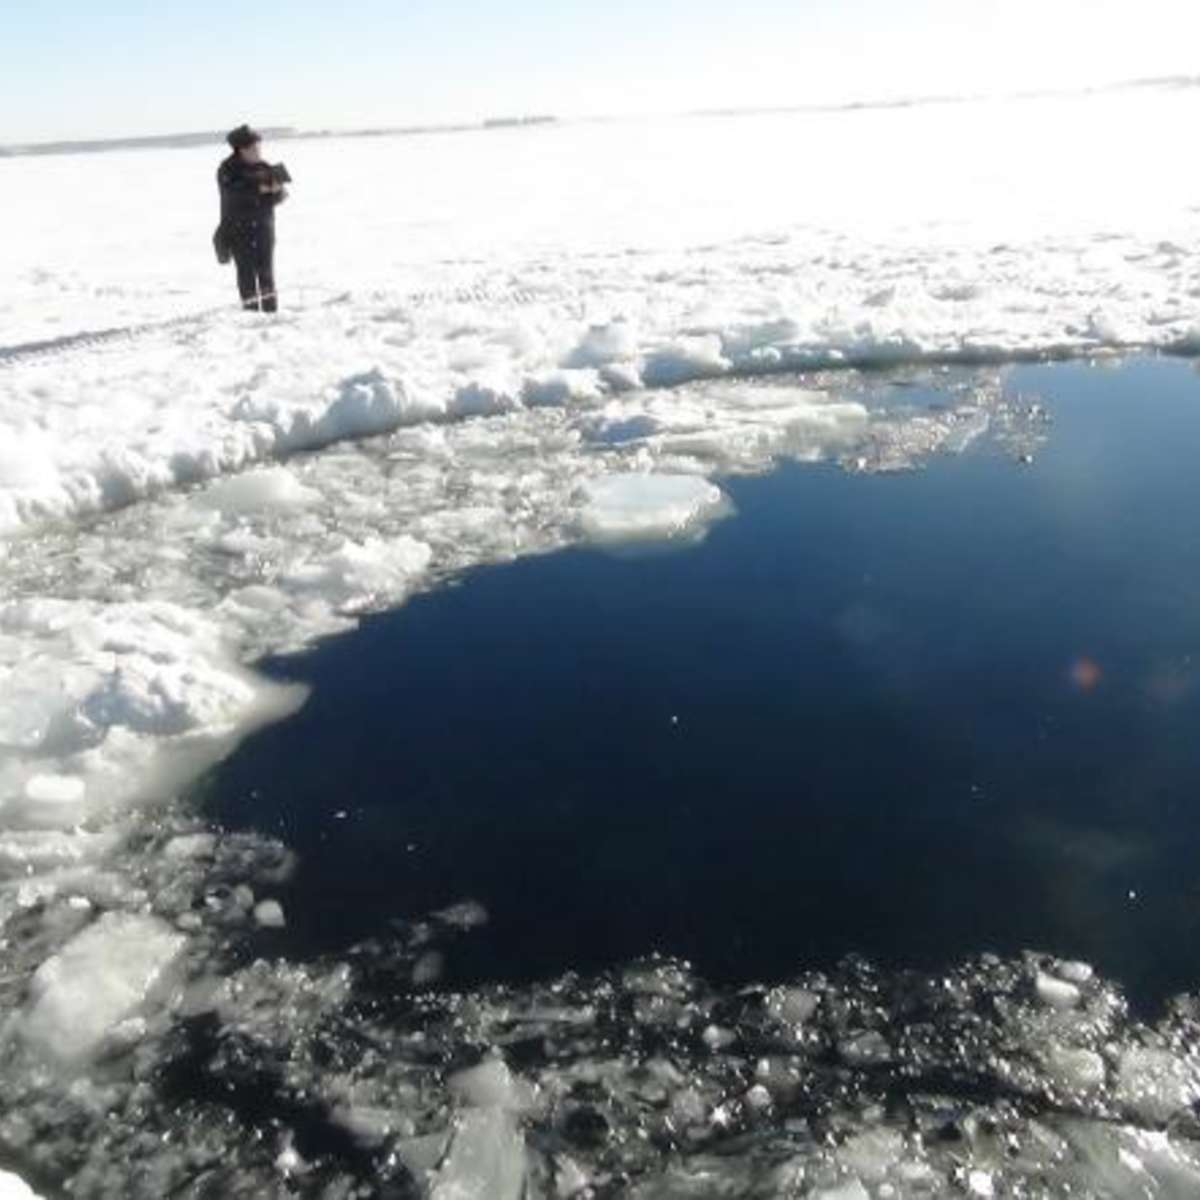 A hole in the frozen surface Lake Chebarkul made by the impact of a half-ton chunk of the Chelyabinsk meteorite on Feb. 15, 2013. We now have video of this event. Credit: ITAR-TASS Itar-Tass Photos/Newscom